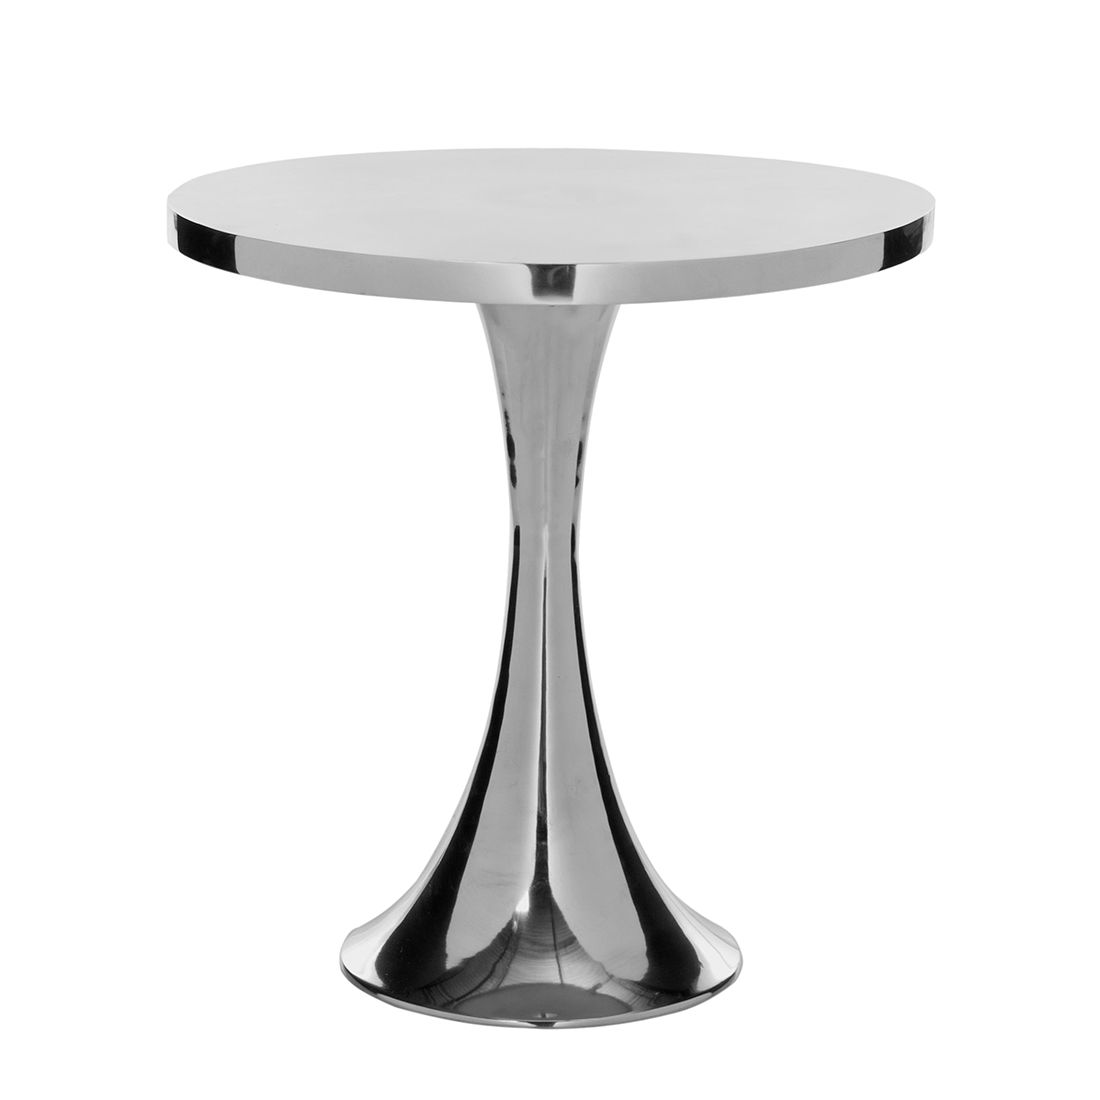 Table d'appoint Galium